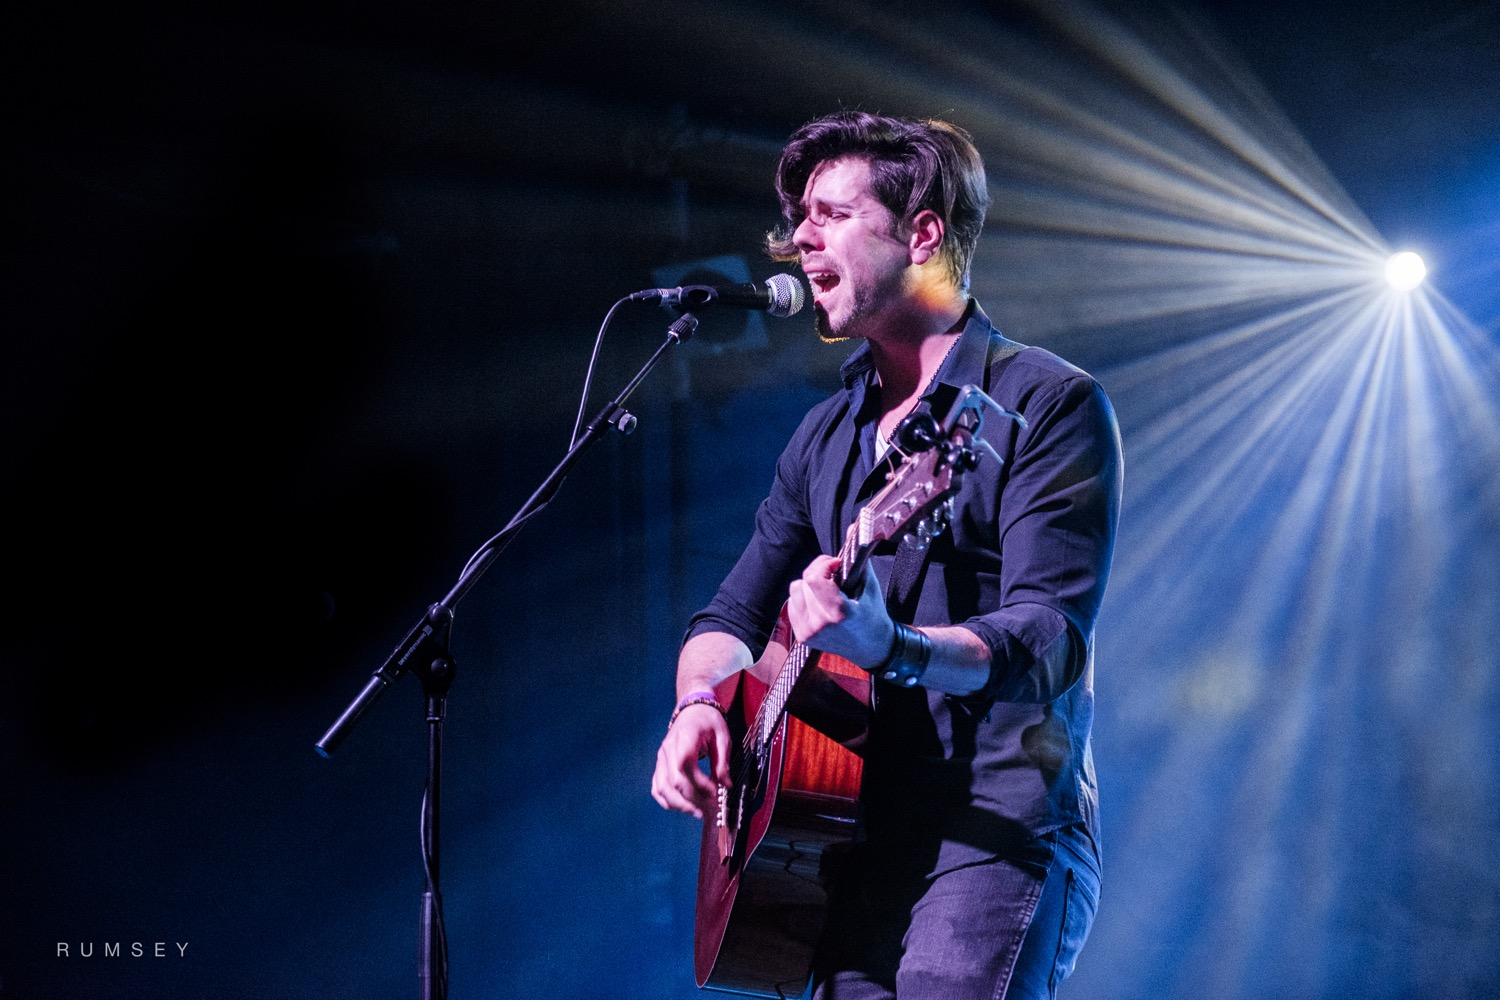 Michael Kilbey on stage at the Scala, London